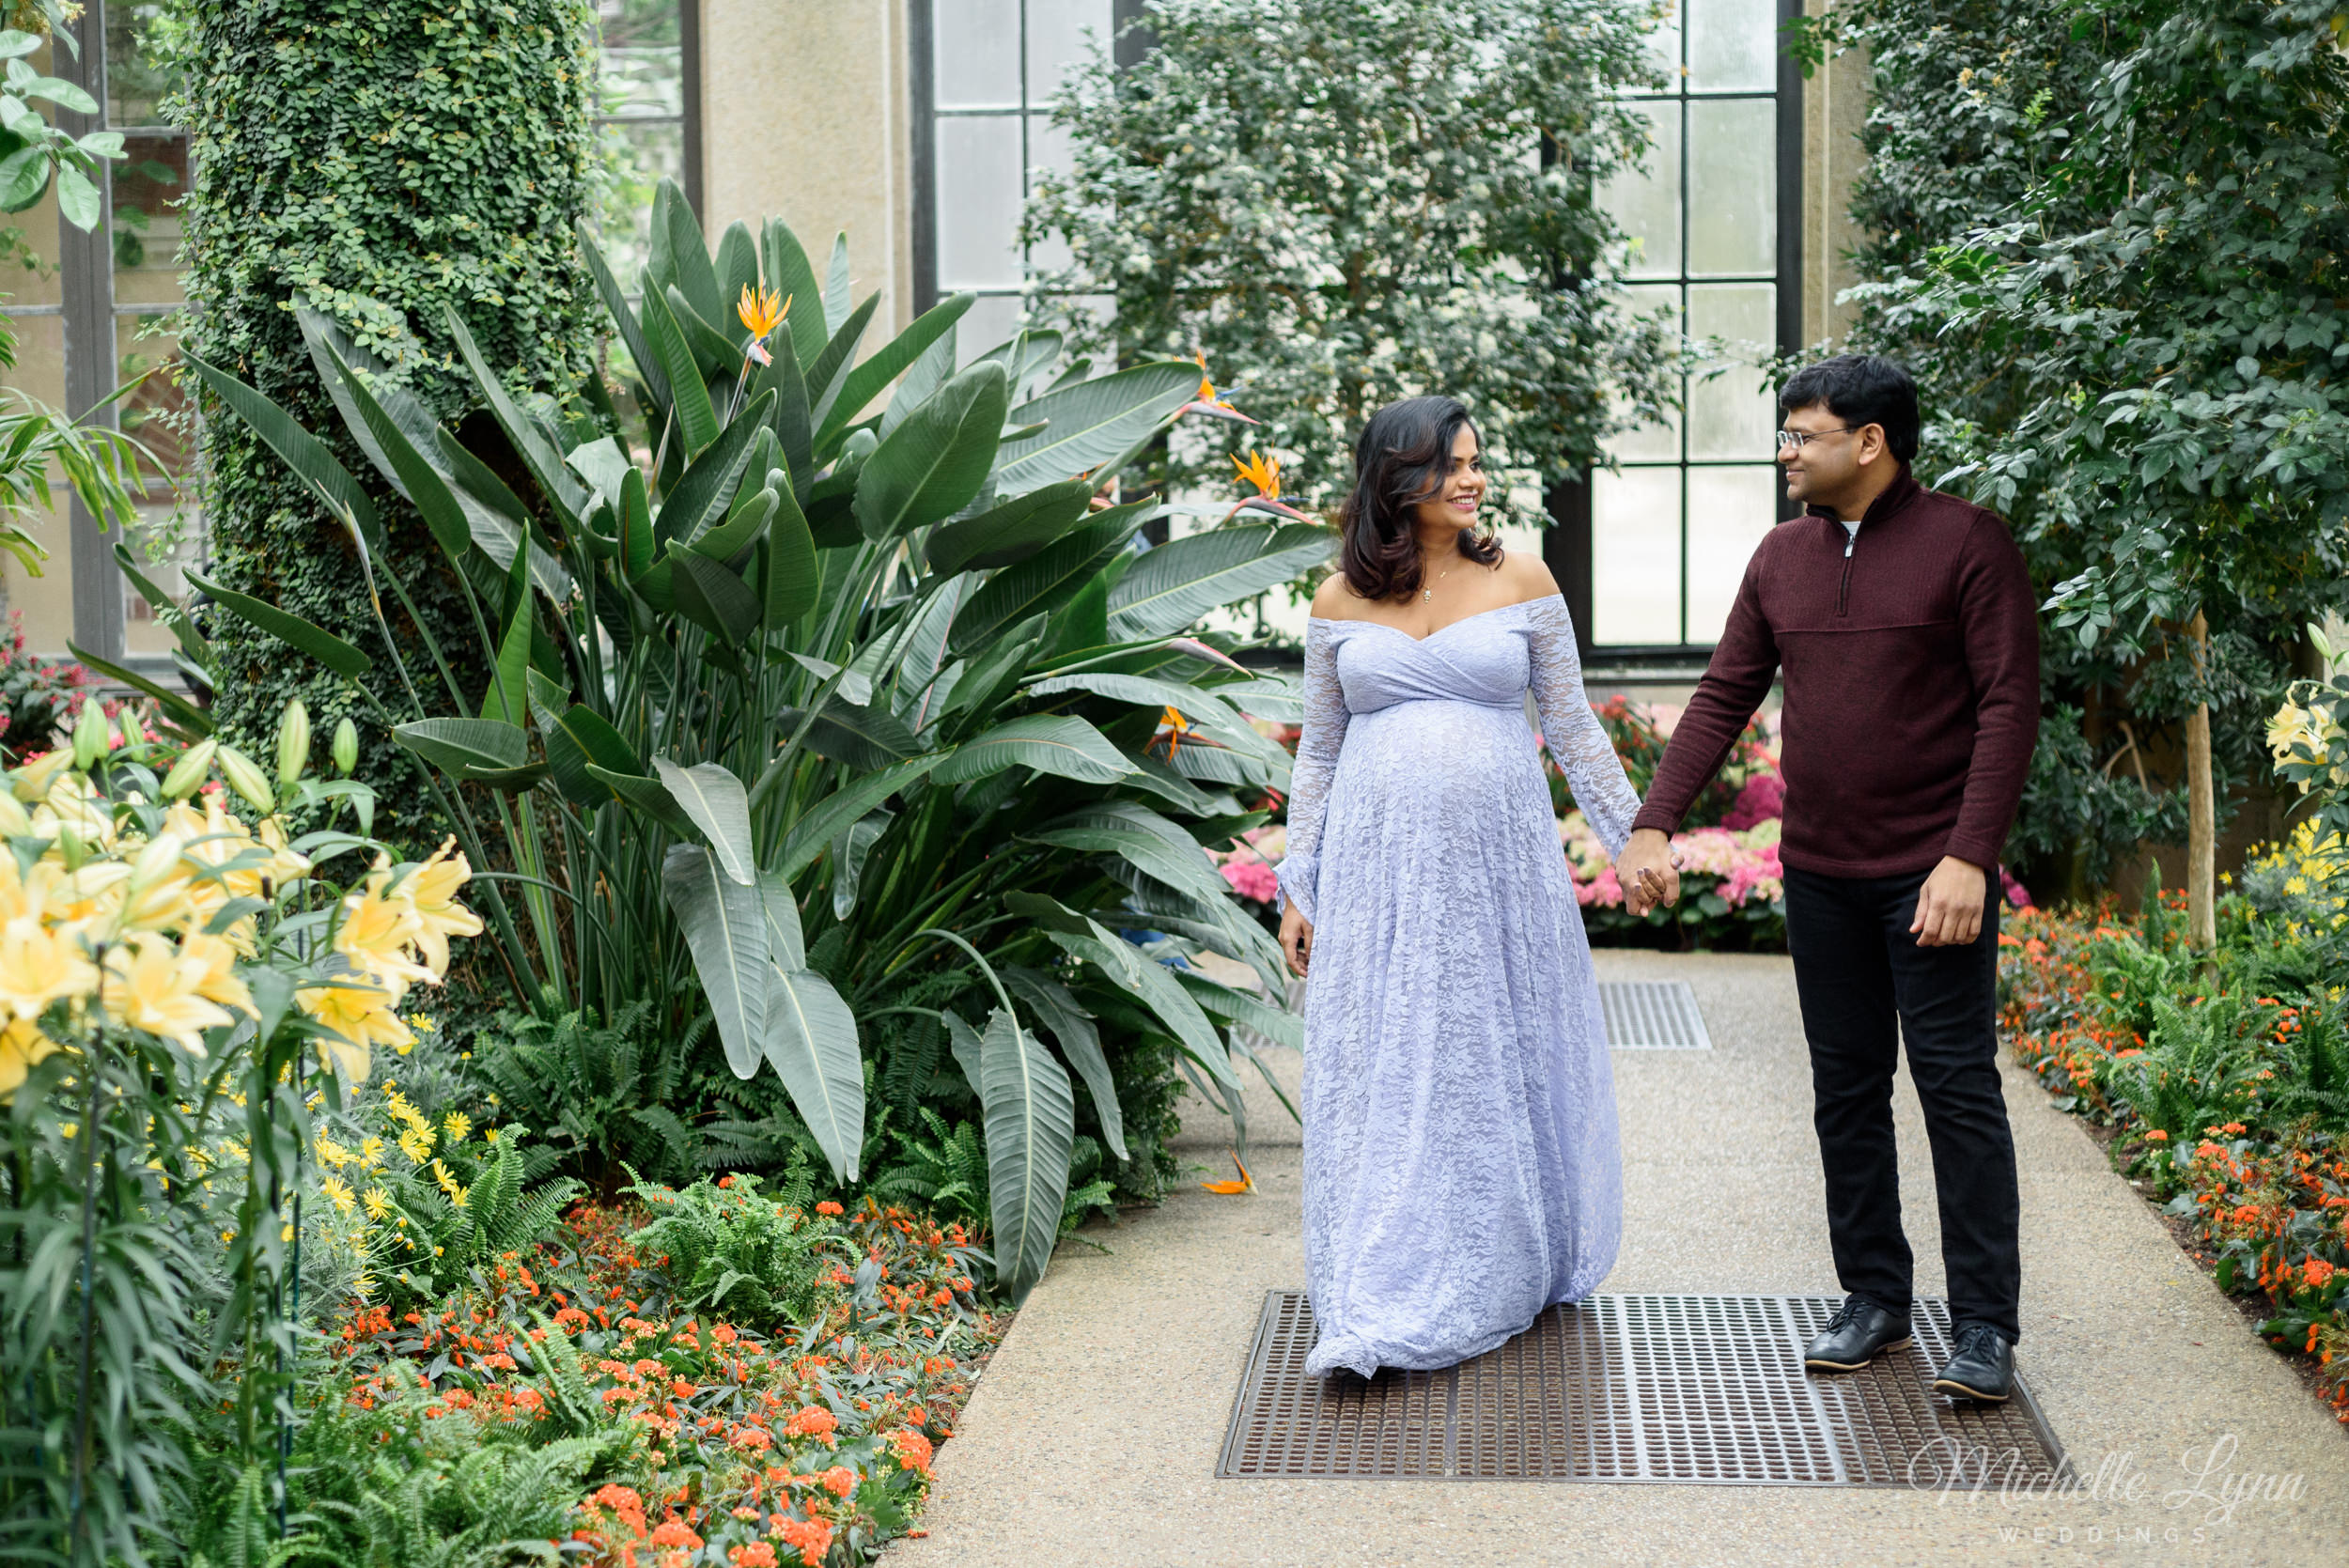 mlw-longwood-gardens-maternity-photos-19.jpg